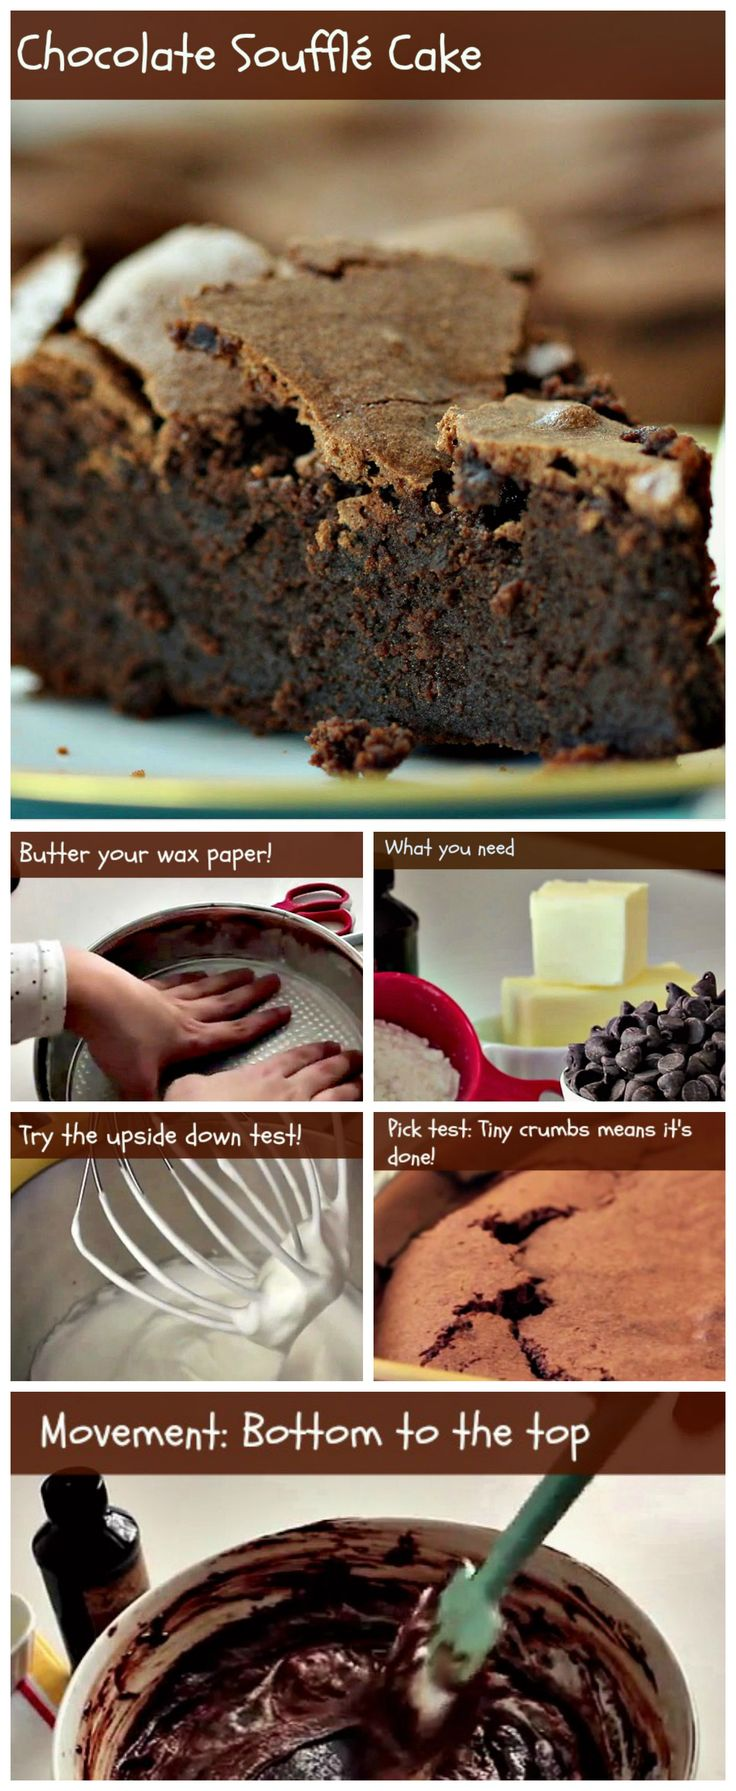 This chocolate souffle cake recipe has a crackly crust that guarantees crunchiness at the same time it protects the decadent, tender chocolaty center. Try it! #chocolatecake #souffle #cake